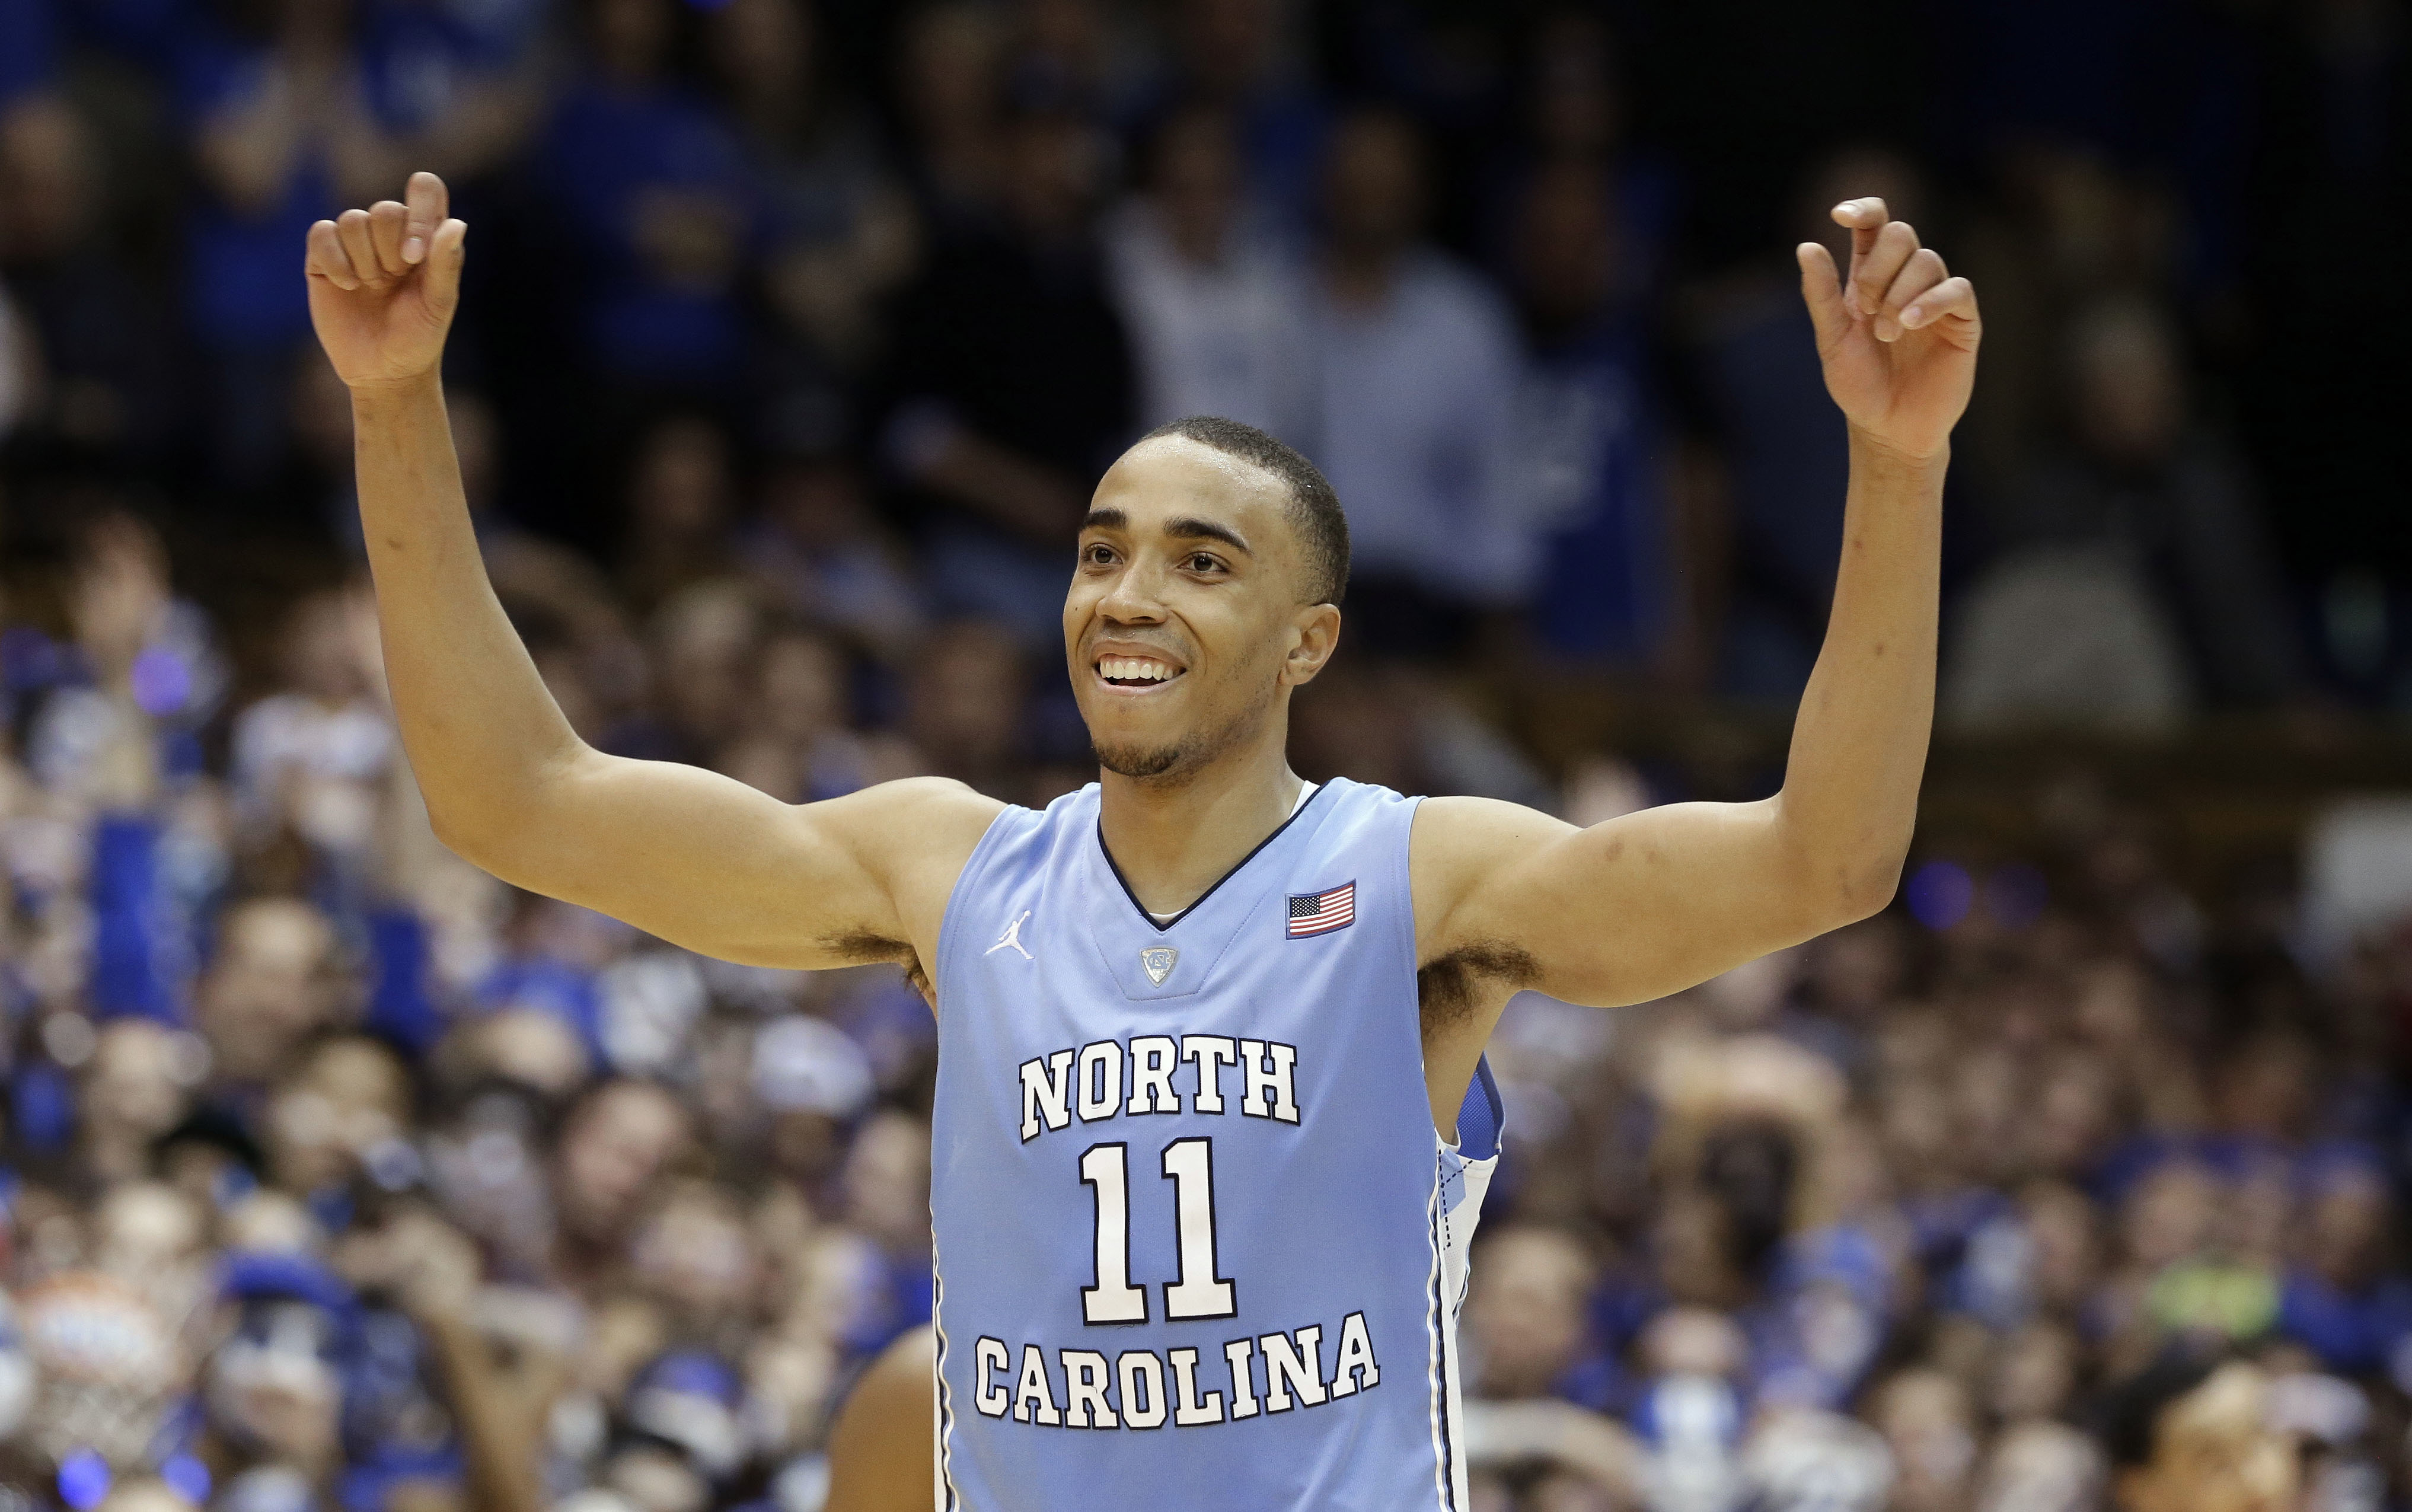 North Carolina's Brice Johnson (11) reacts following North Carolina's 76-72 win over Duke in an NCAA college basketball game in Durham, N.C., Saturday, March 5, 2016. (AP Photo/Gerry Broome)